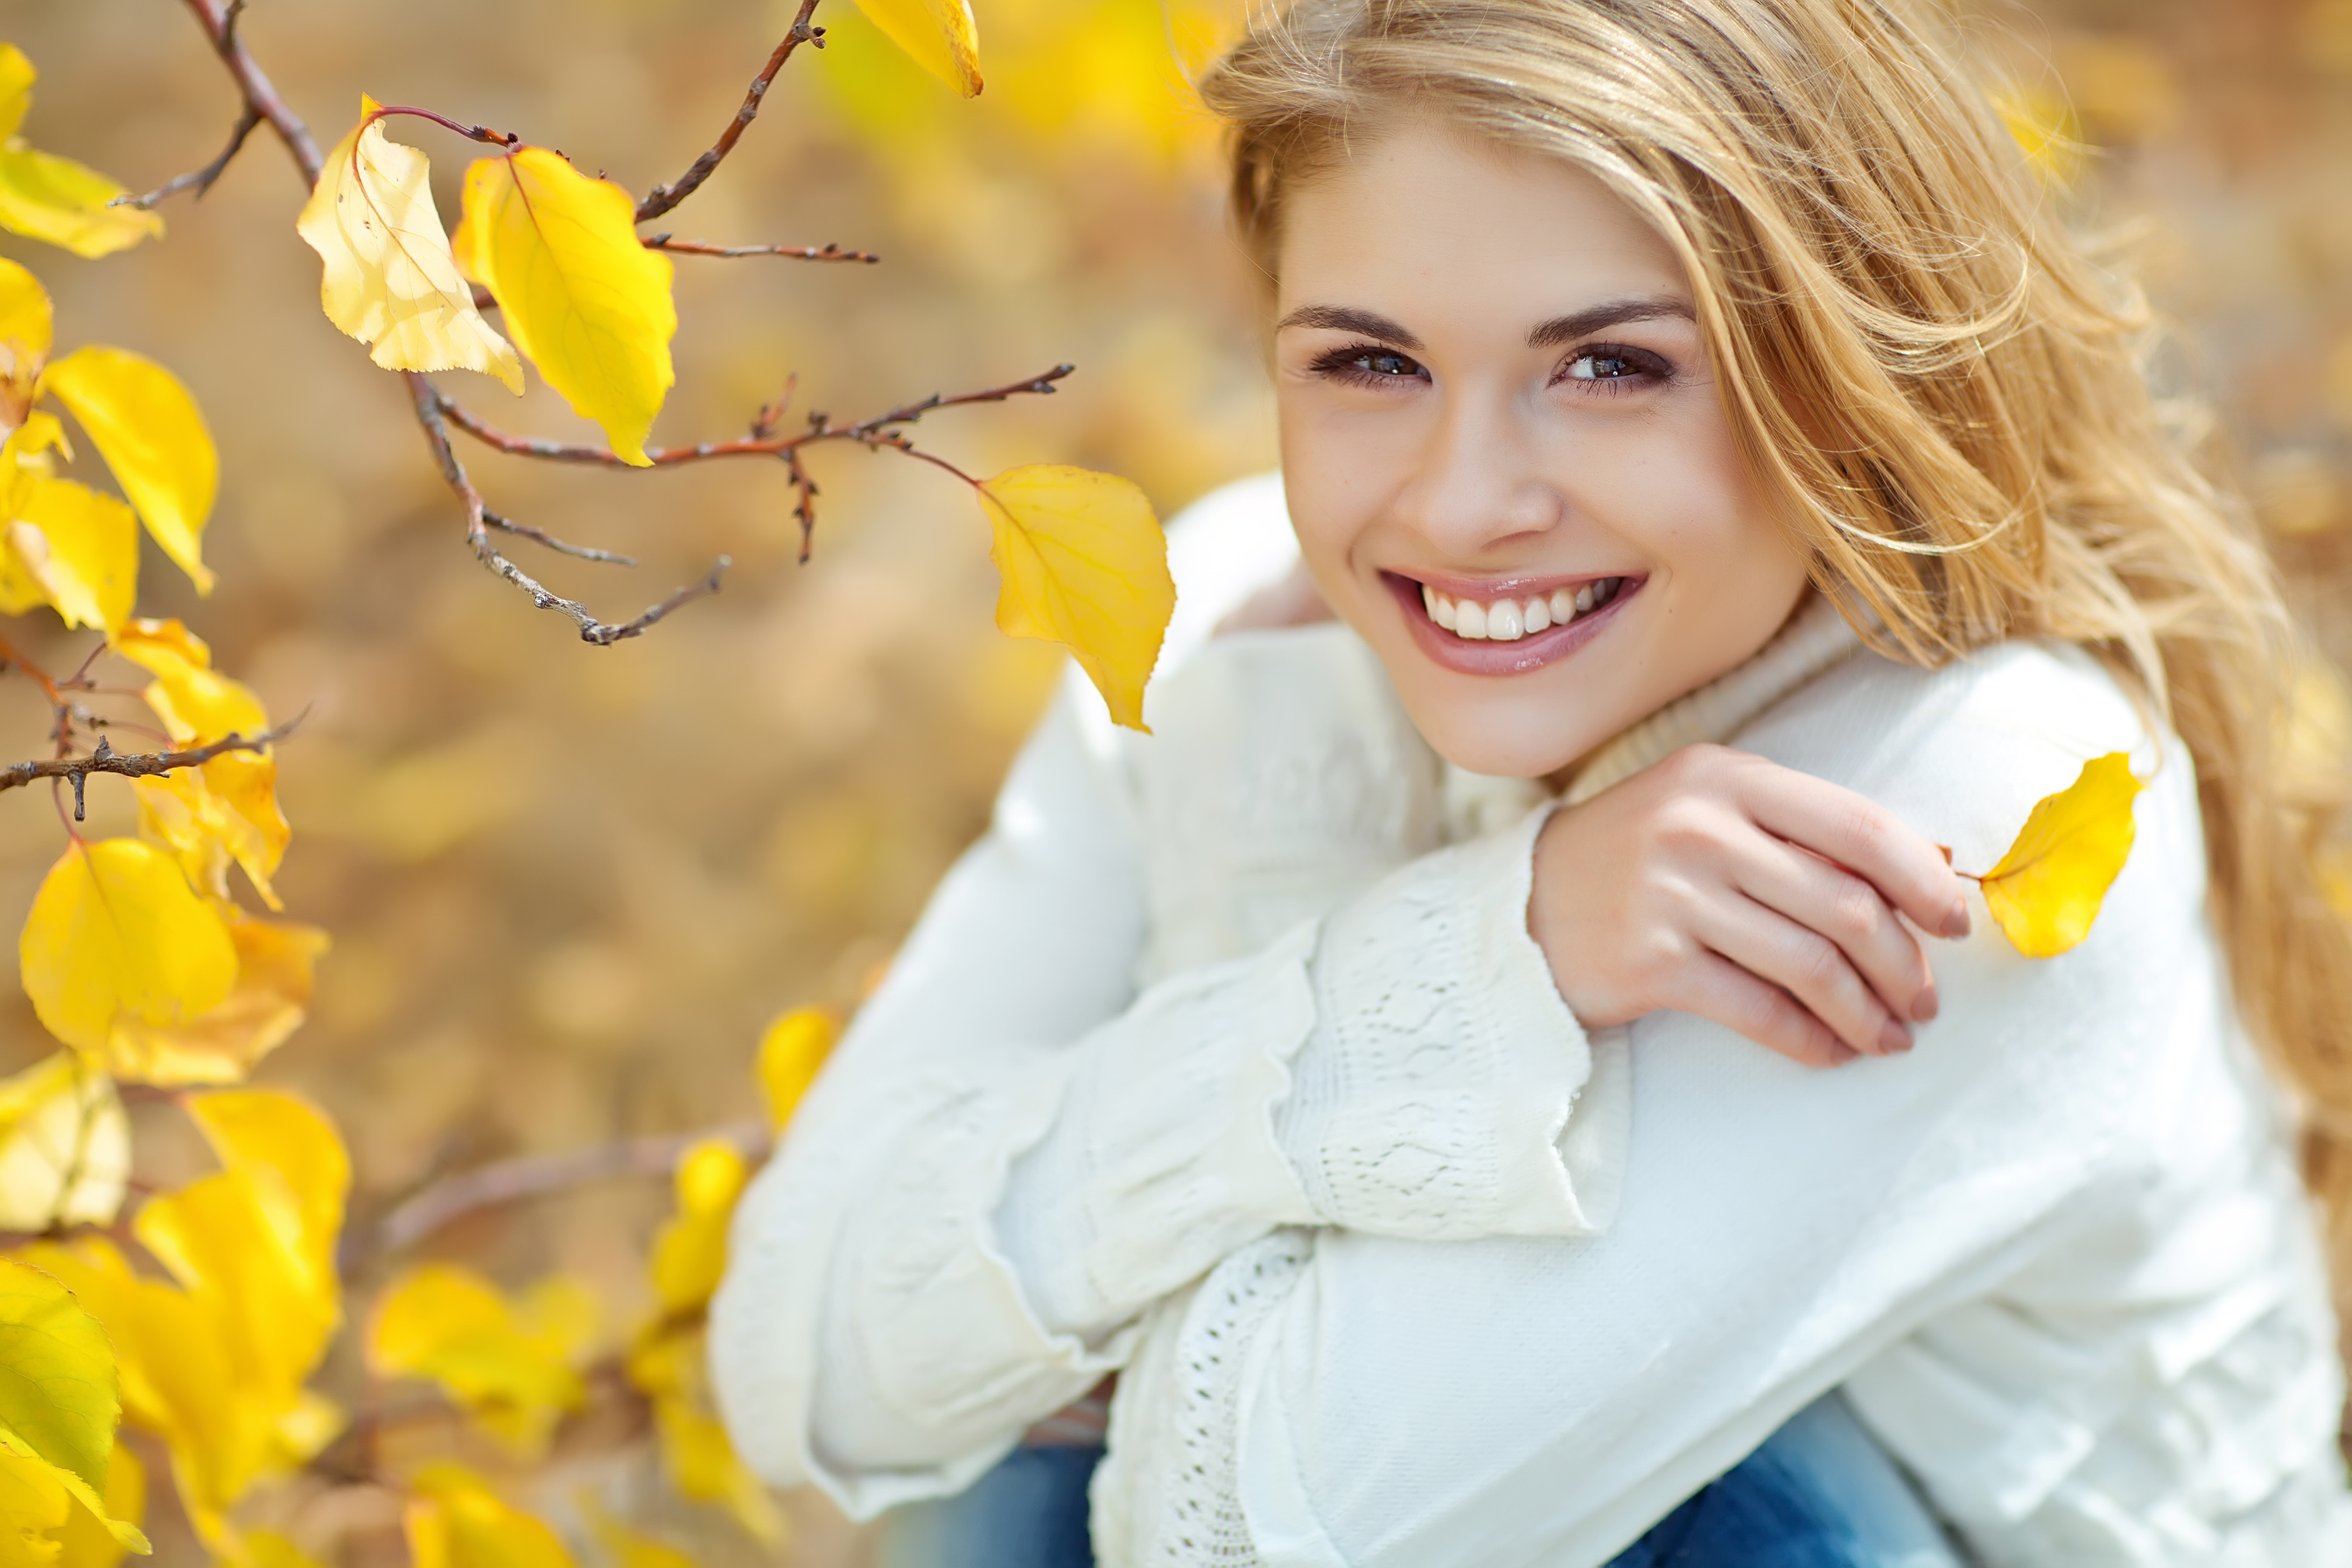 portrait-of-beautiful-woman-in-autumn-outdoors